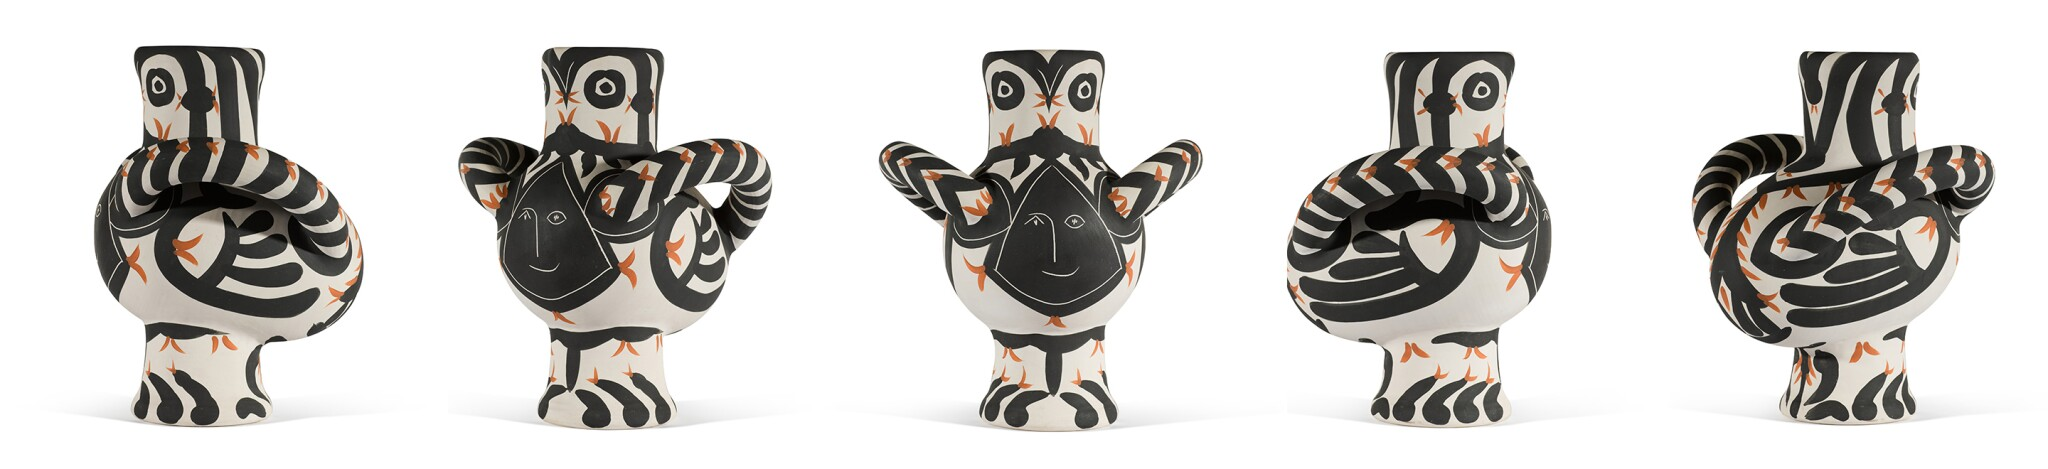 Important Ceramics featuring Property from The Nina Miller Collection